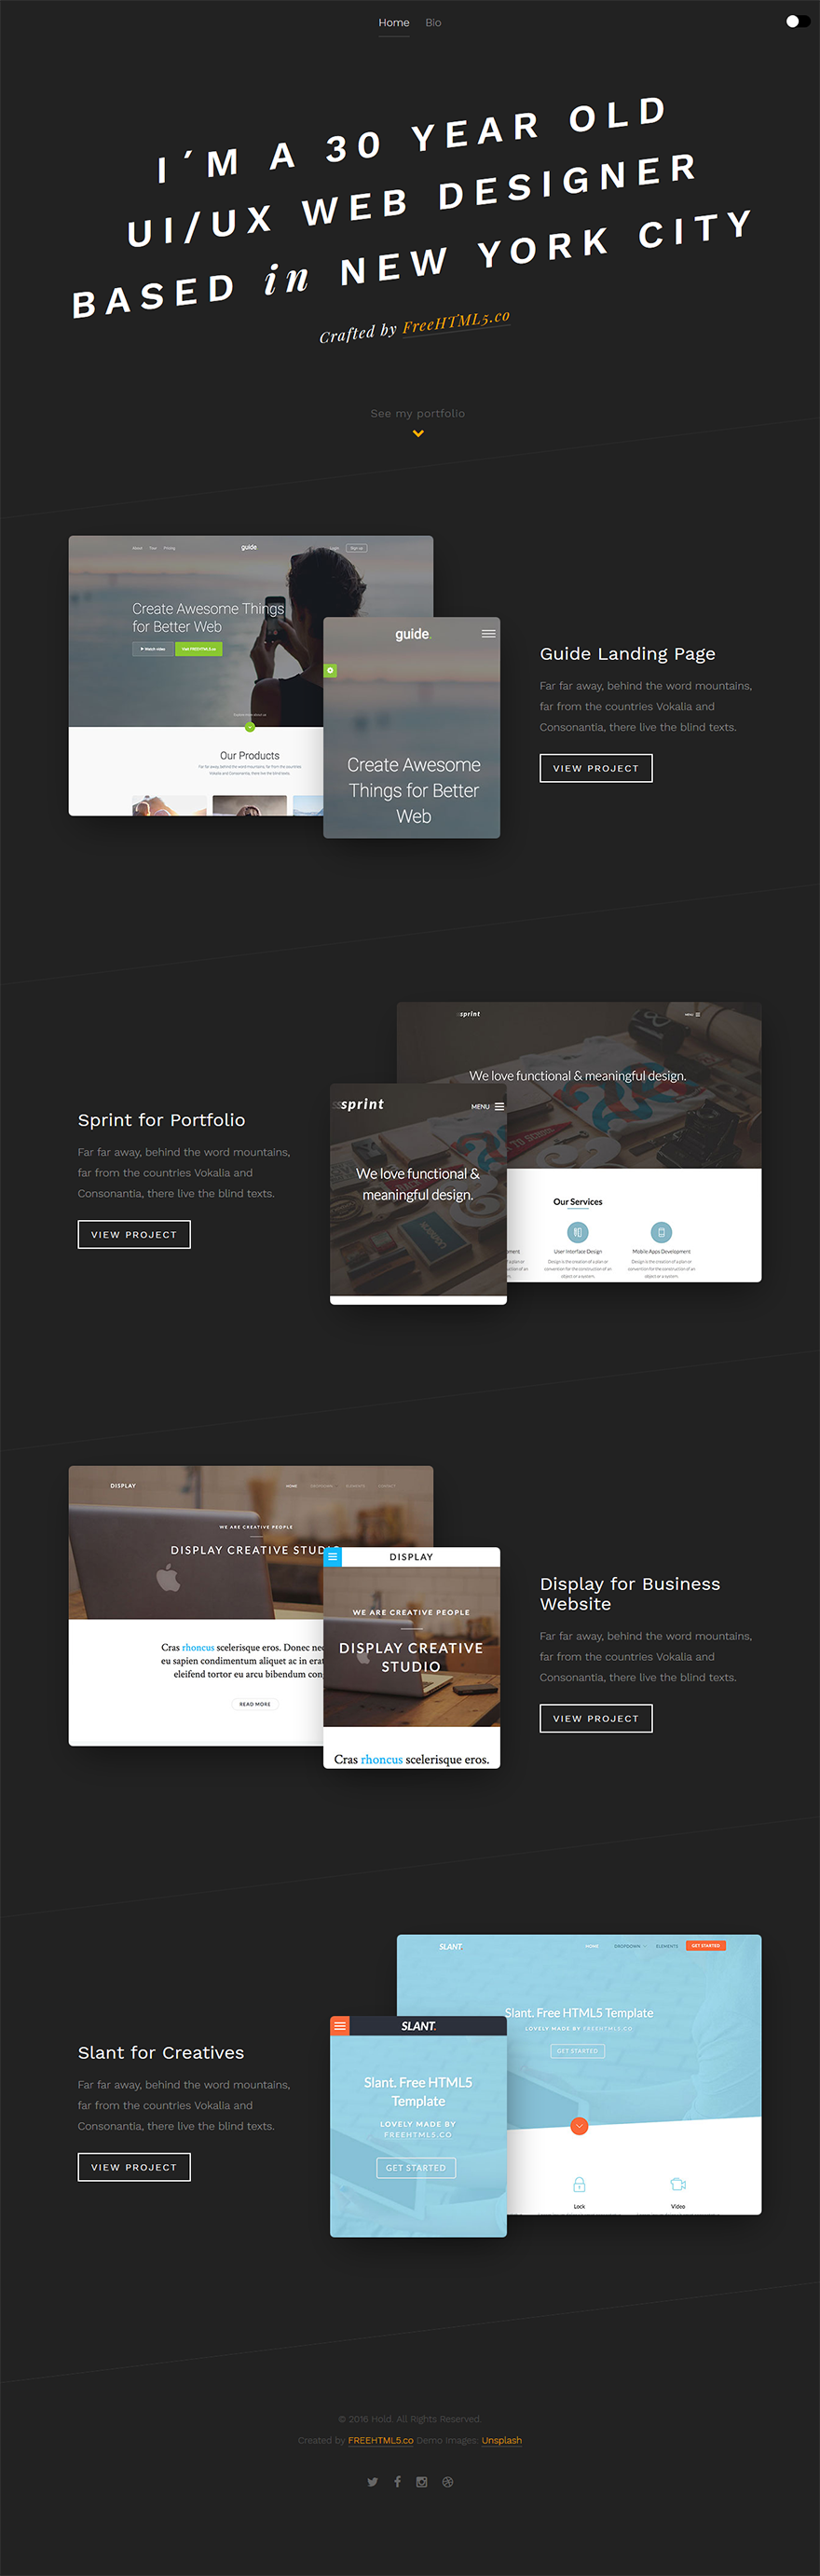 Free One Page Website HTML Template - Hold - GraphicArmy | One page ...